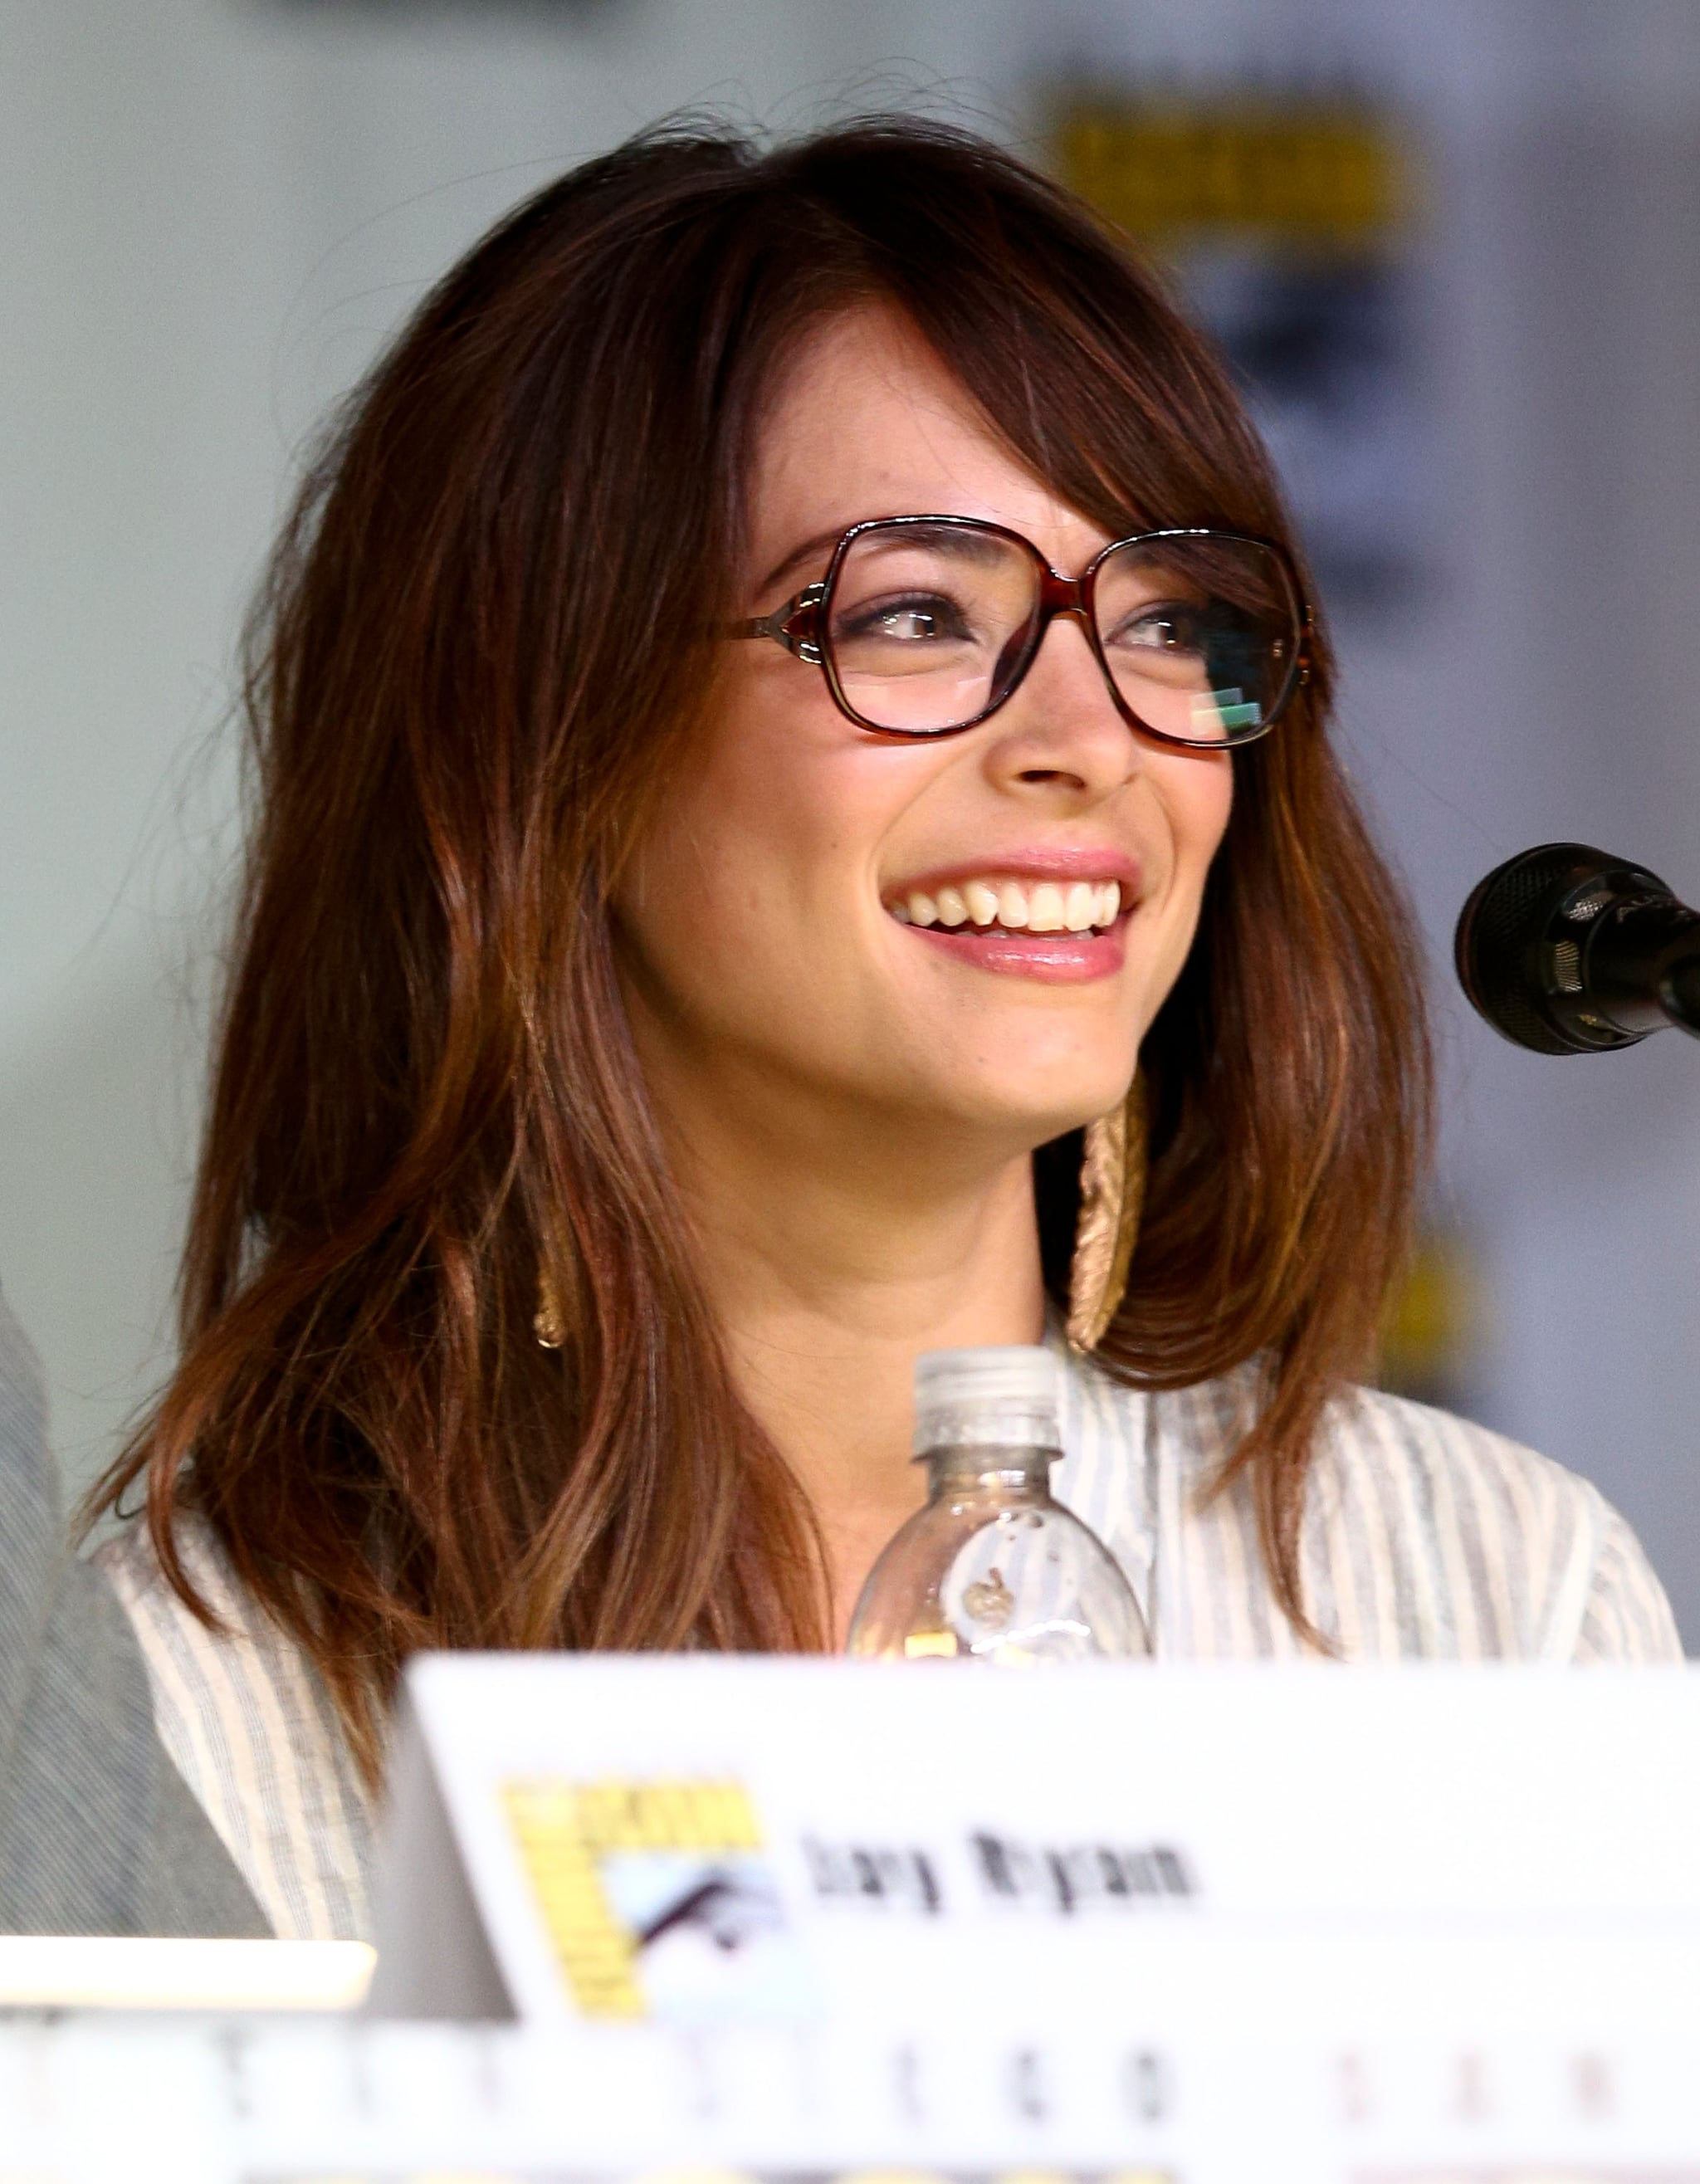 Kristin Kreuk looked adorable at the Beauty and the Beast panel Thursday night as part of Comic-Con in San Diego.